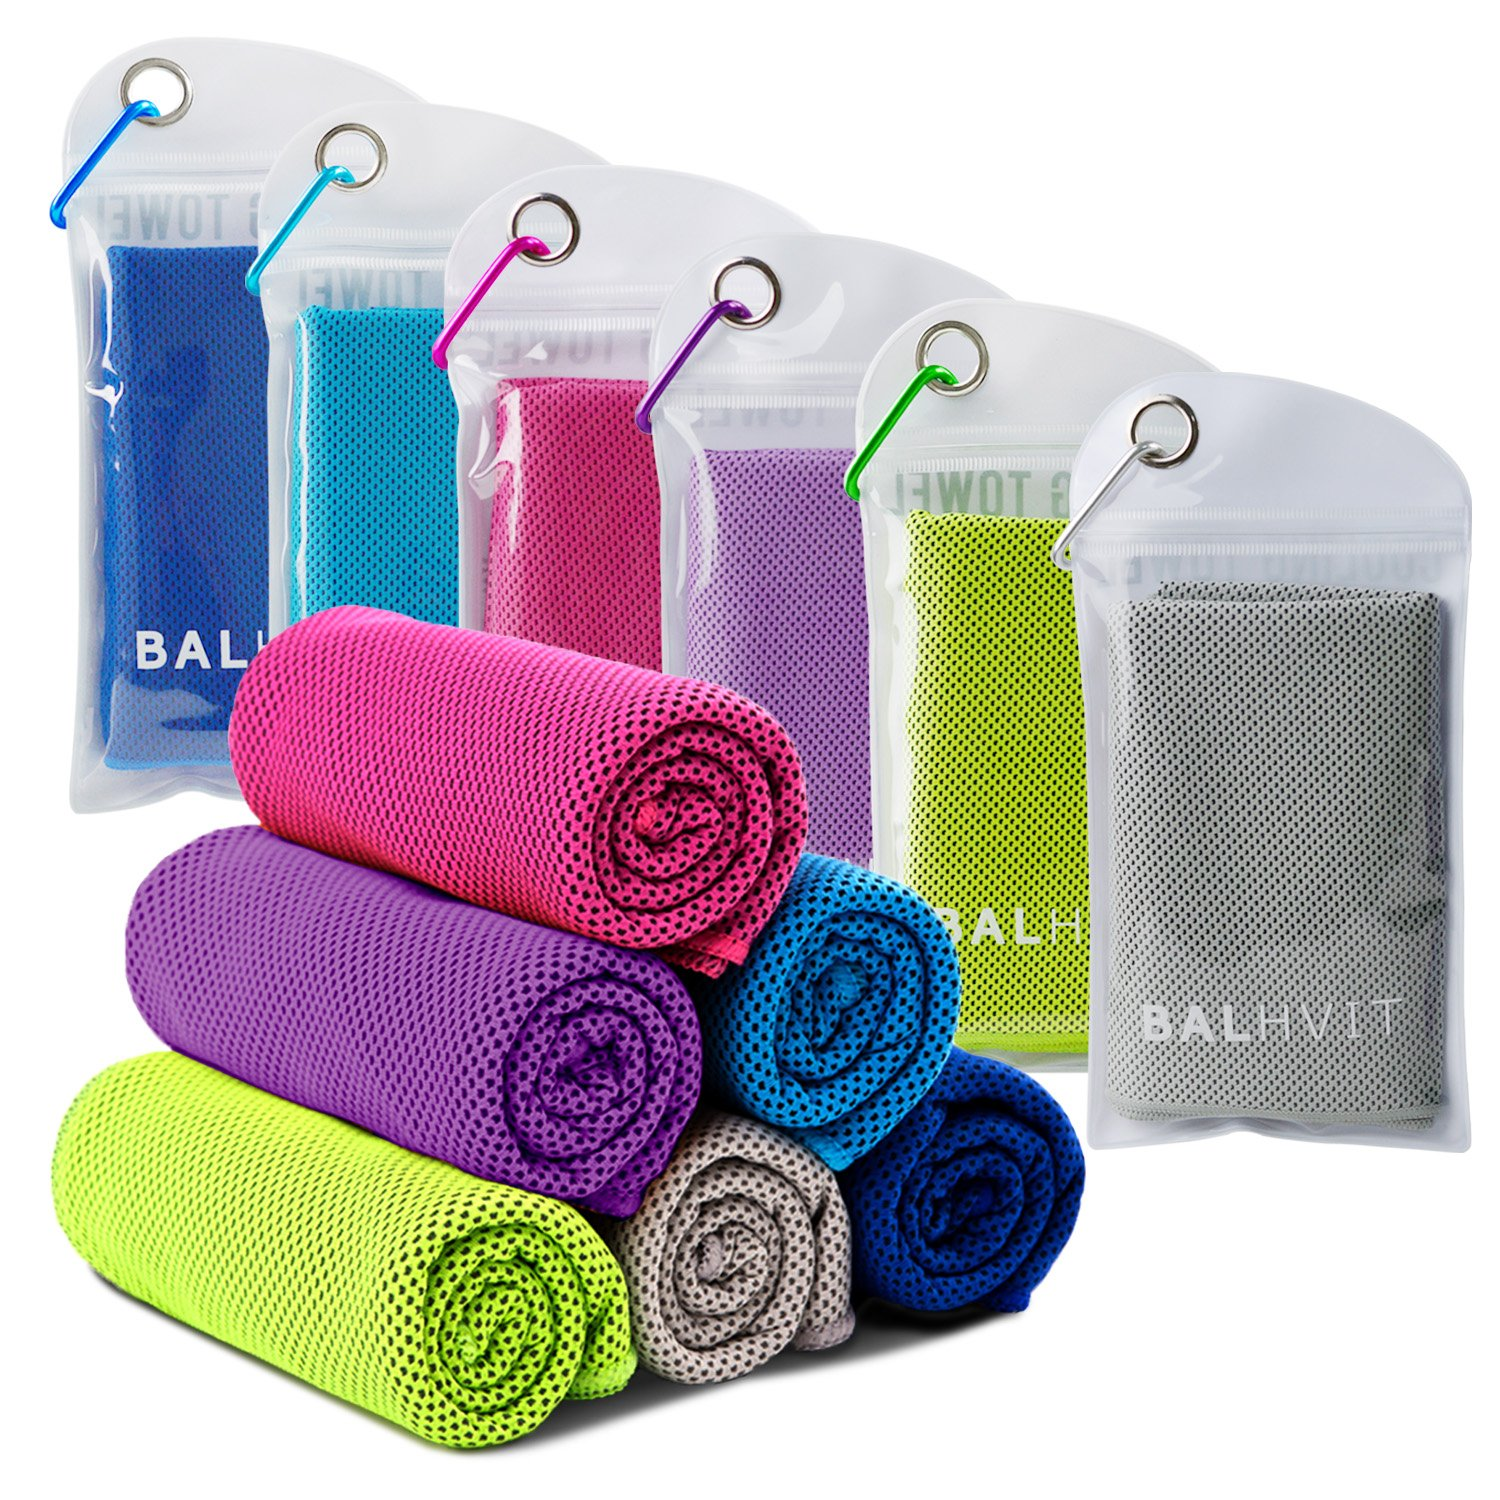 Cooling Towel For Instant Relief » Help Or Hype